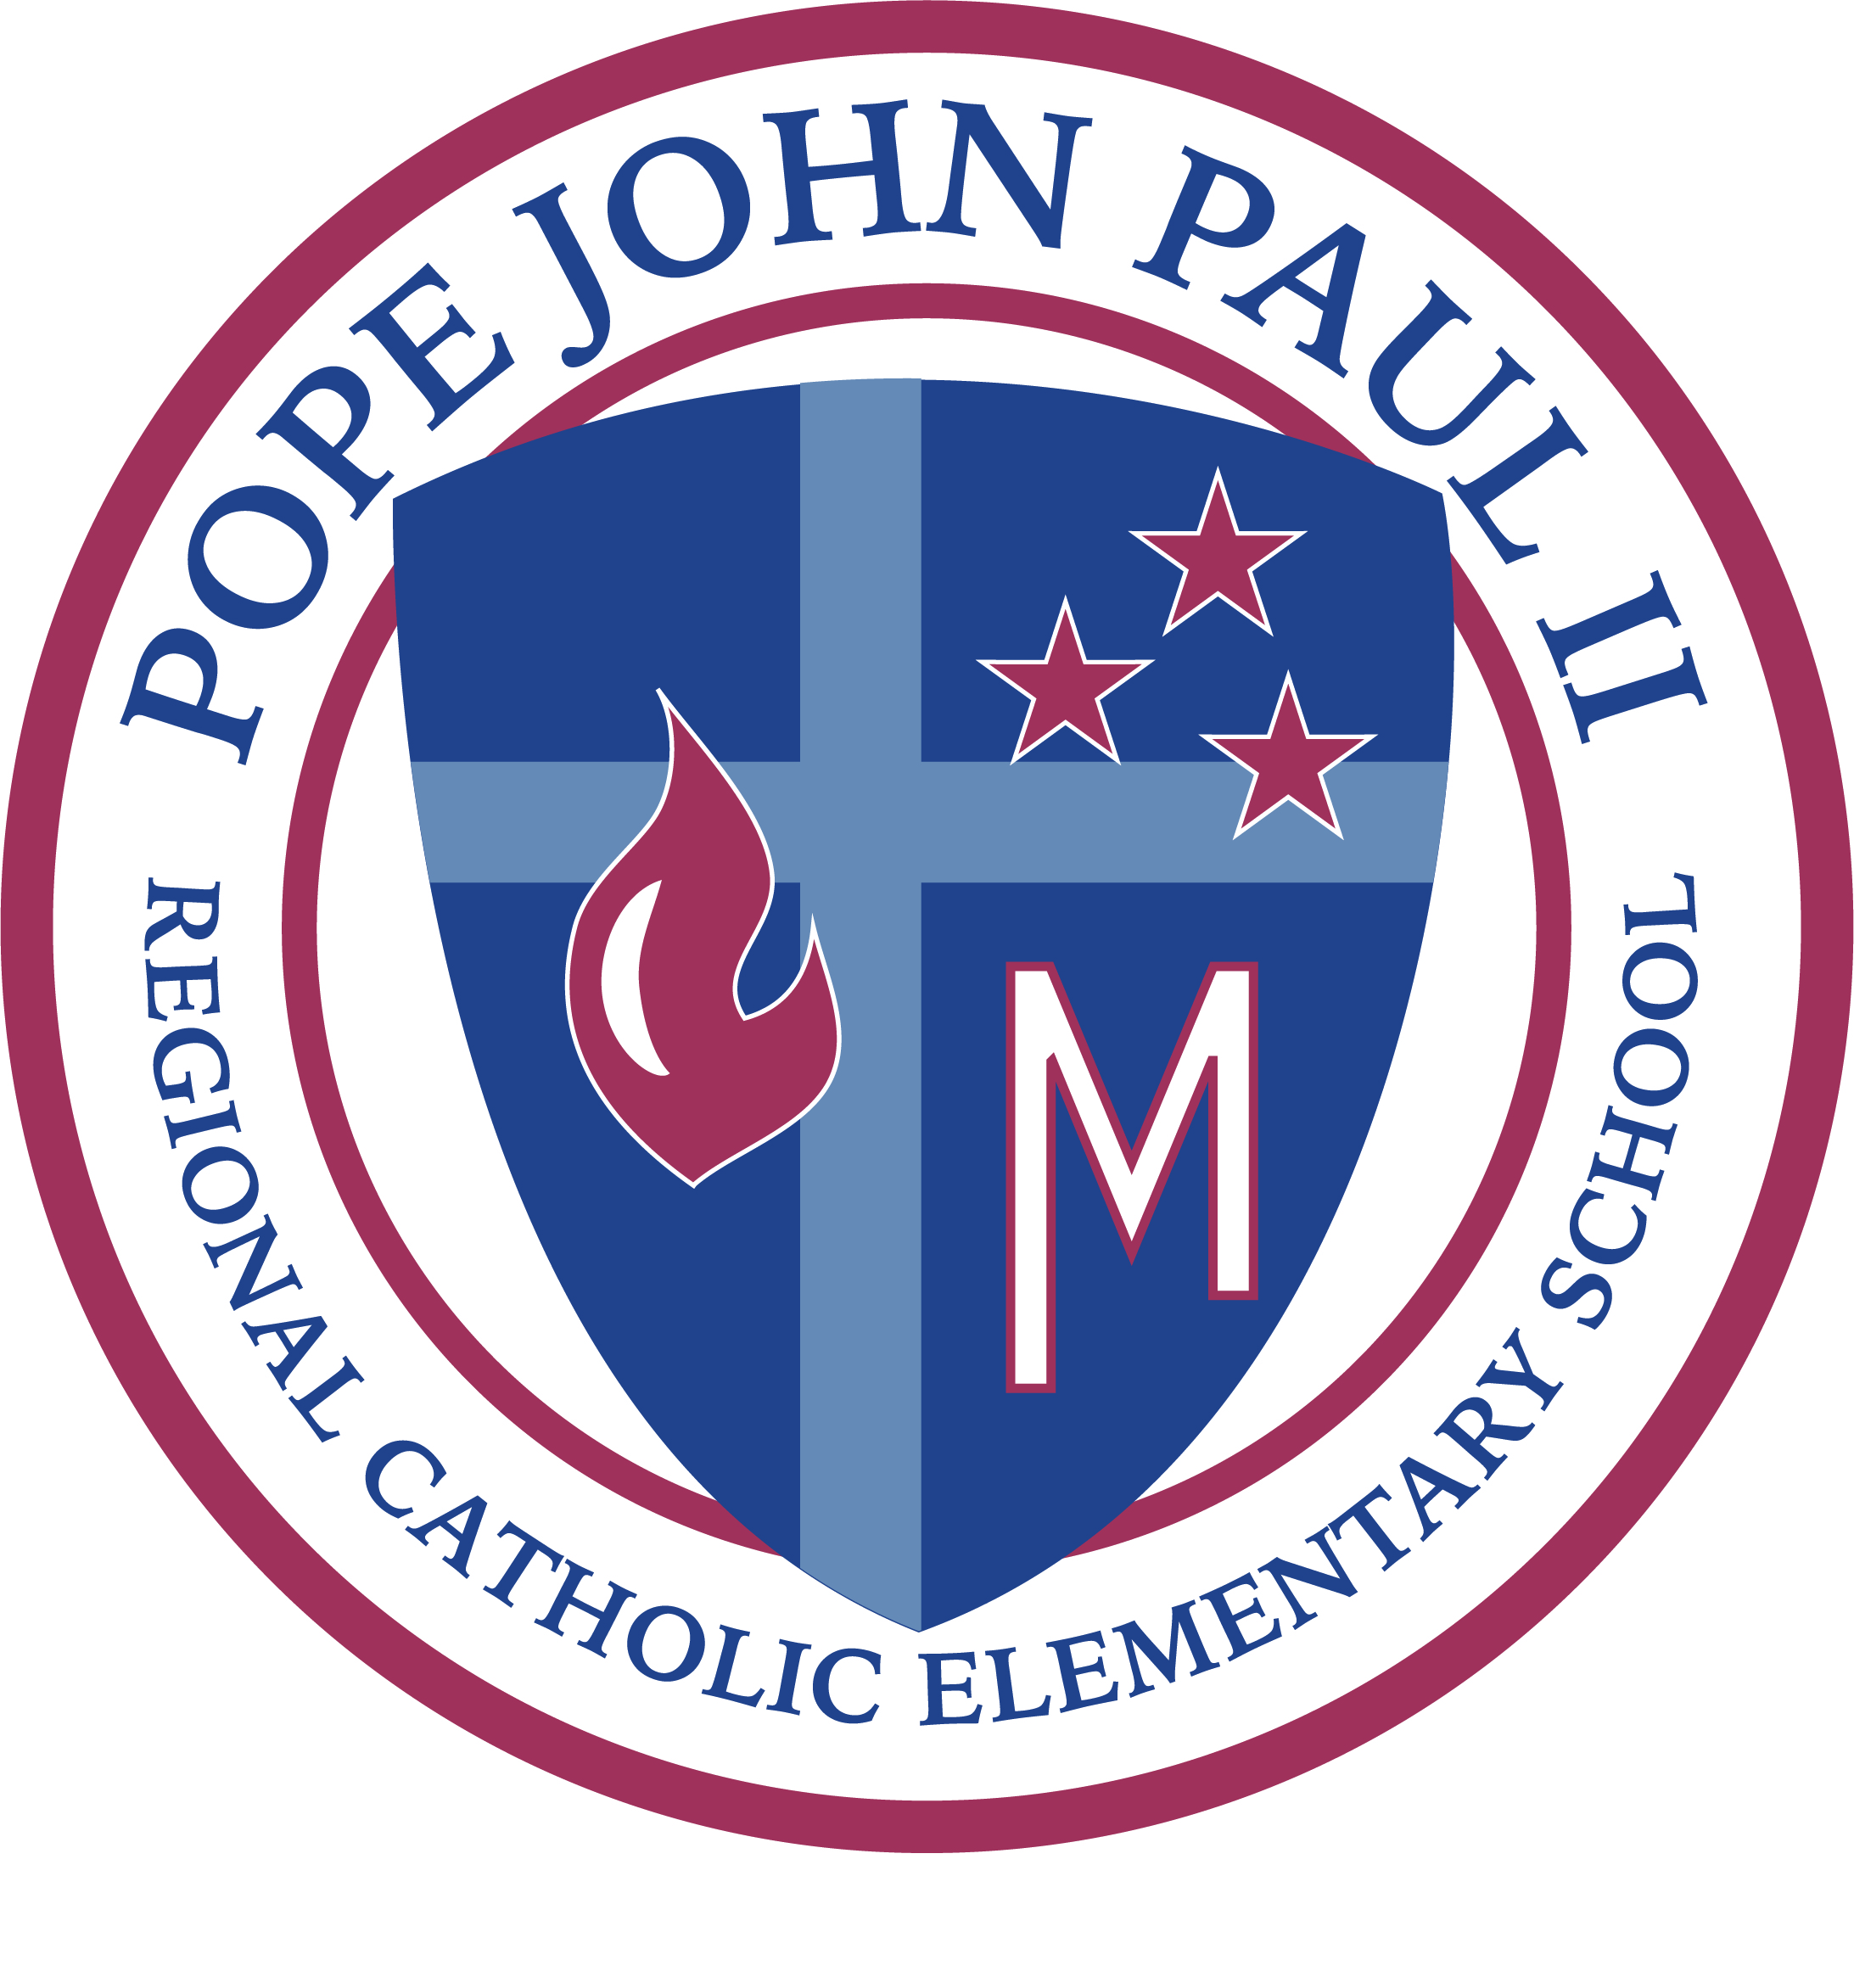 Pope John Paul II Regional Catholic Elementary School